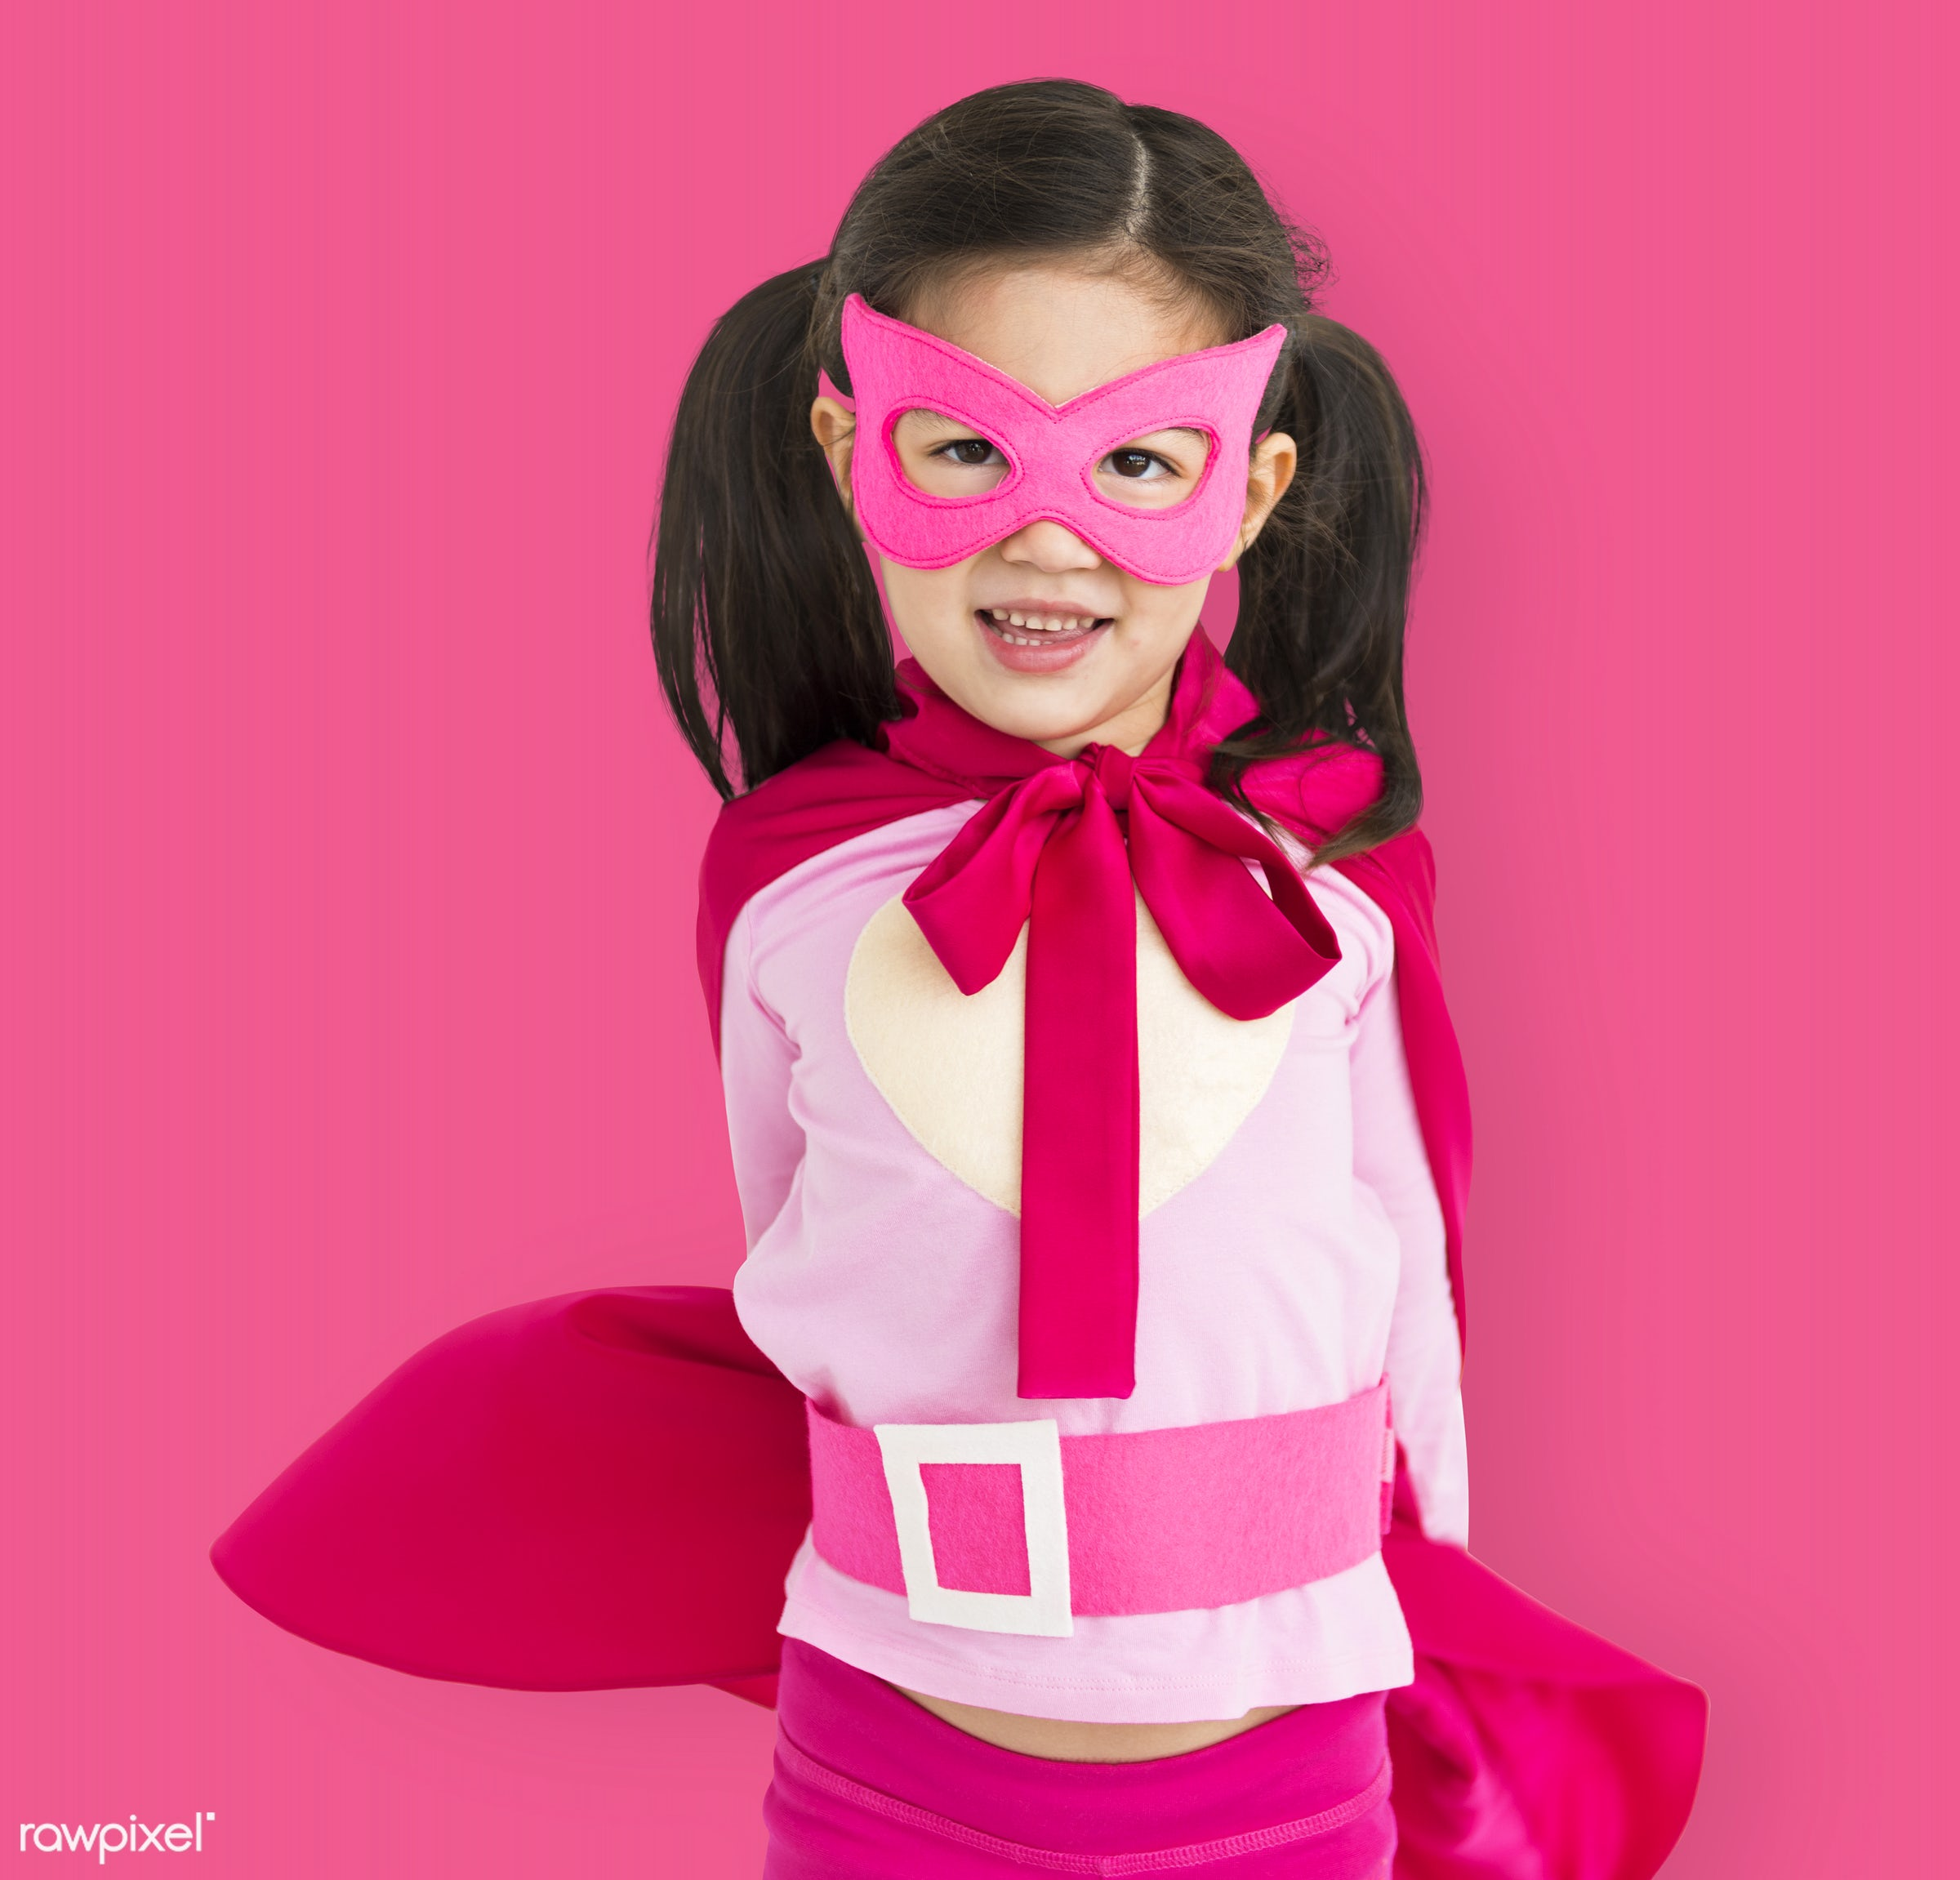 alone, asian, cheerful, child, costume, isolated, kid, mask, one, playful, smiling, superhero, young, youth